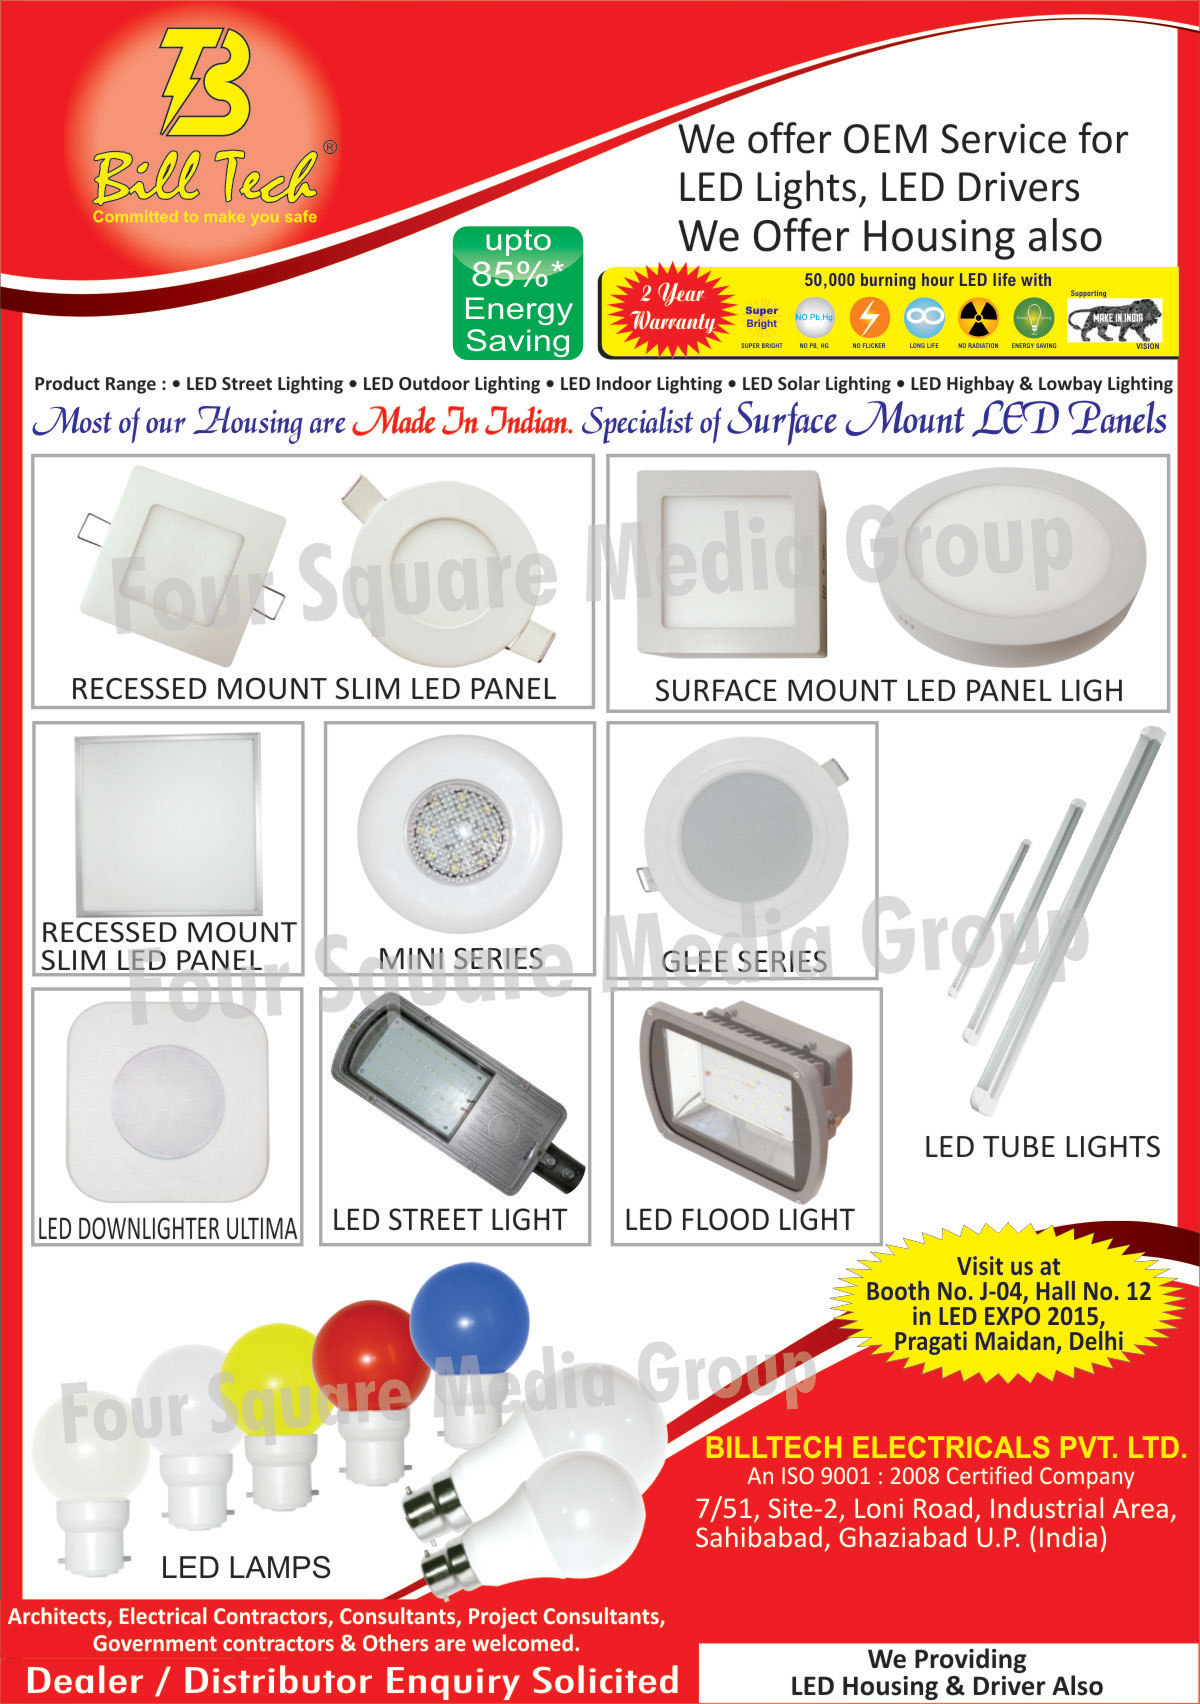 Led Lights, Led Flood Lights, Led Tube Lights, Led Lamps, Led Street Lights, Led Outdoor Lights, Led Indoor Lights, Led Solar Lights, Led High Bay Lights, Led Low Bay Lights, Led Drivers, Led Housings, Surface Mount Led Panels, Recessed Mount Slim Led Panels, Surface Mount Led Panel High, Led Down Lights